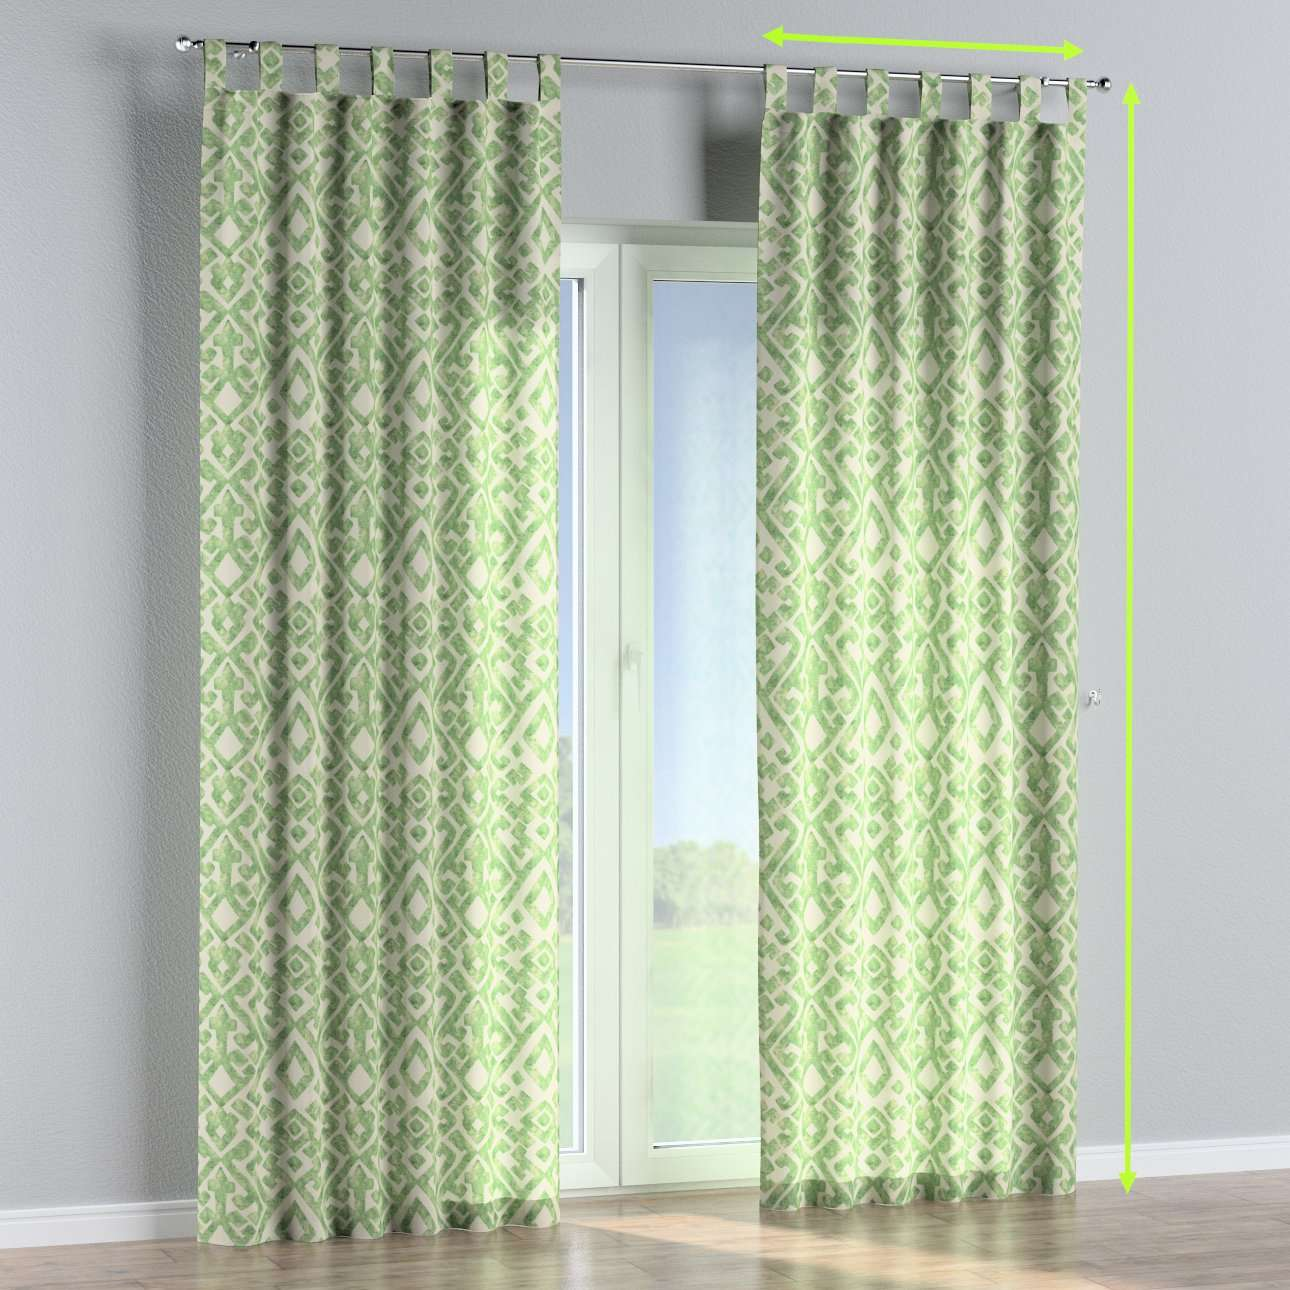 Tab top curtains in collection Urban Jungle, fabric: 141-62